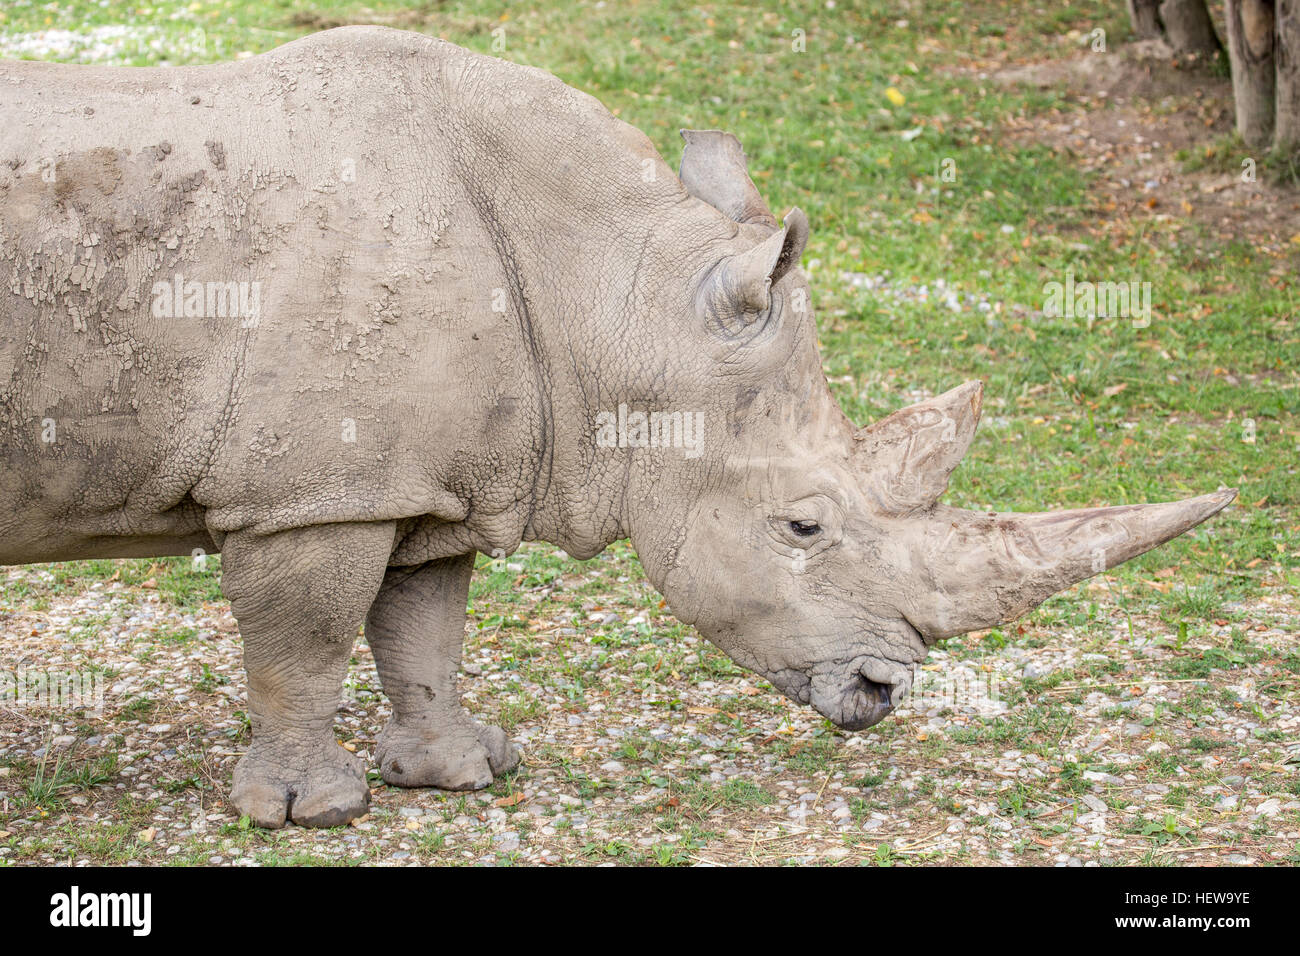 Side view of a white rhinoceros or square-lipped rhinoceros, Ceratotherium simum. These rhinos live in South Africa, Stock Photo